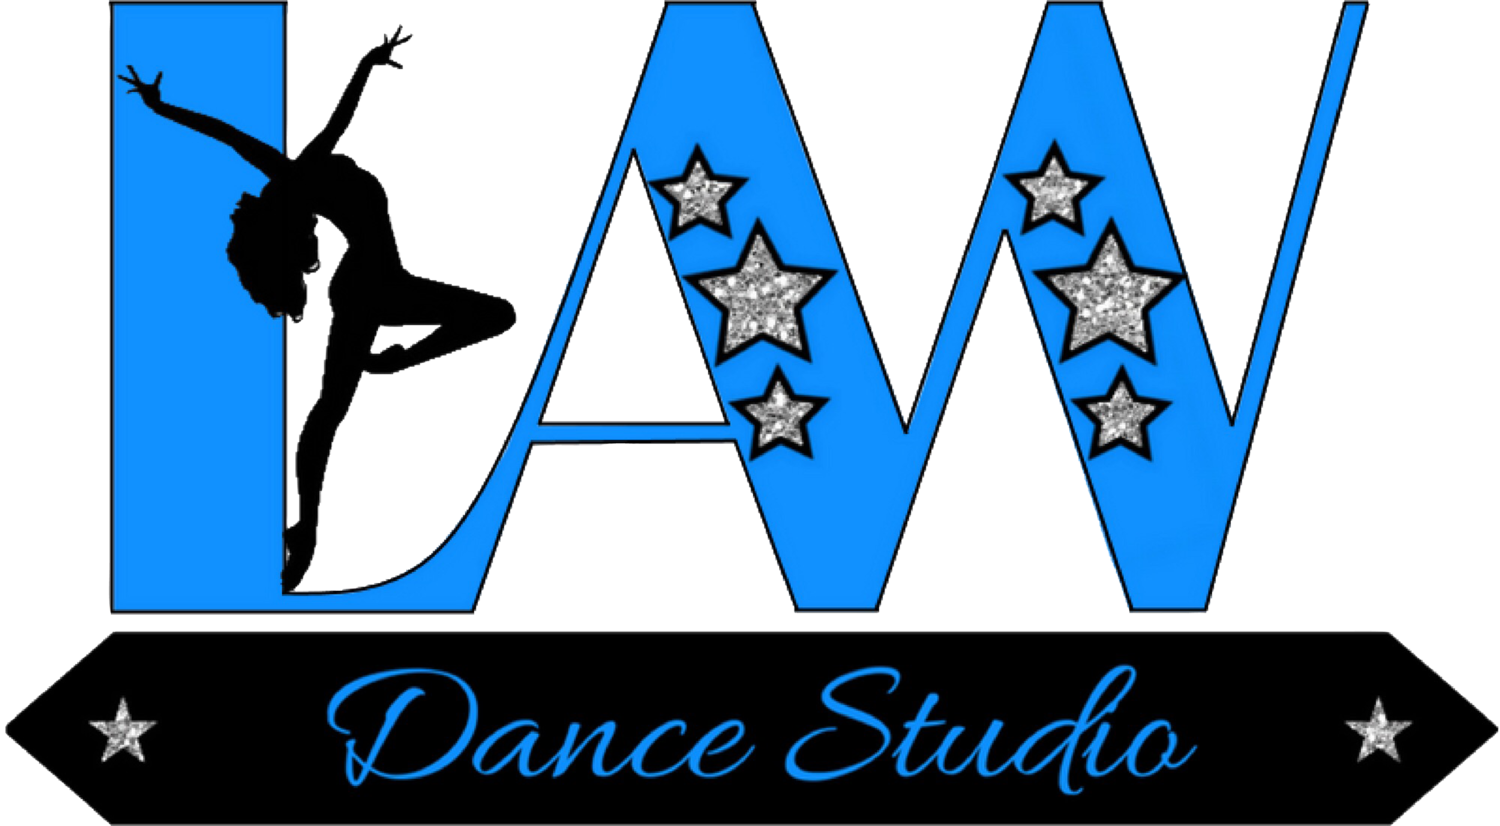 Acro clip triangle. Registration law dance studio